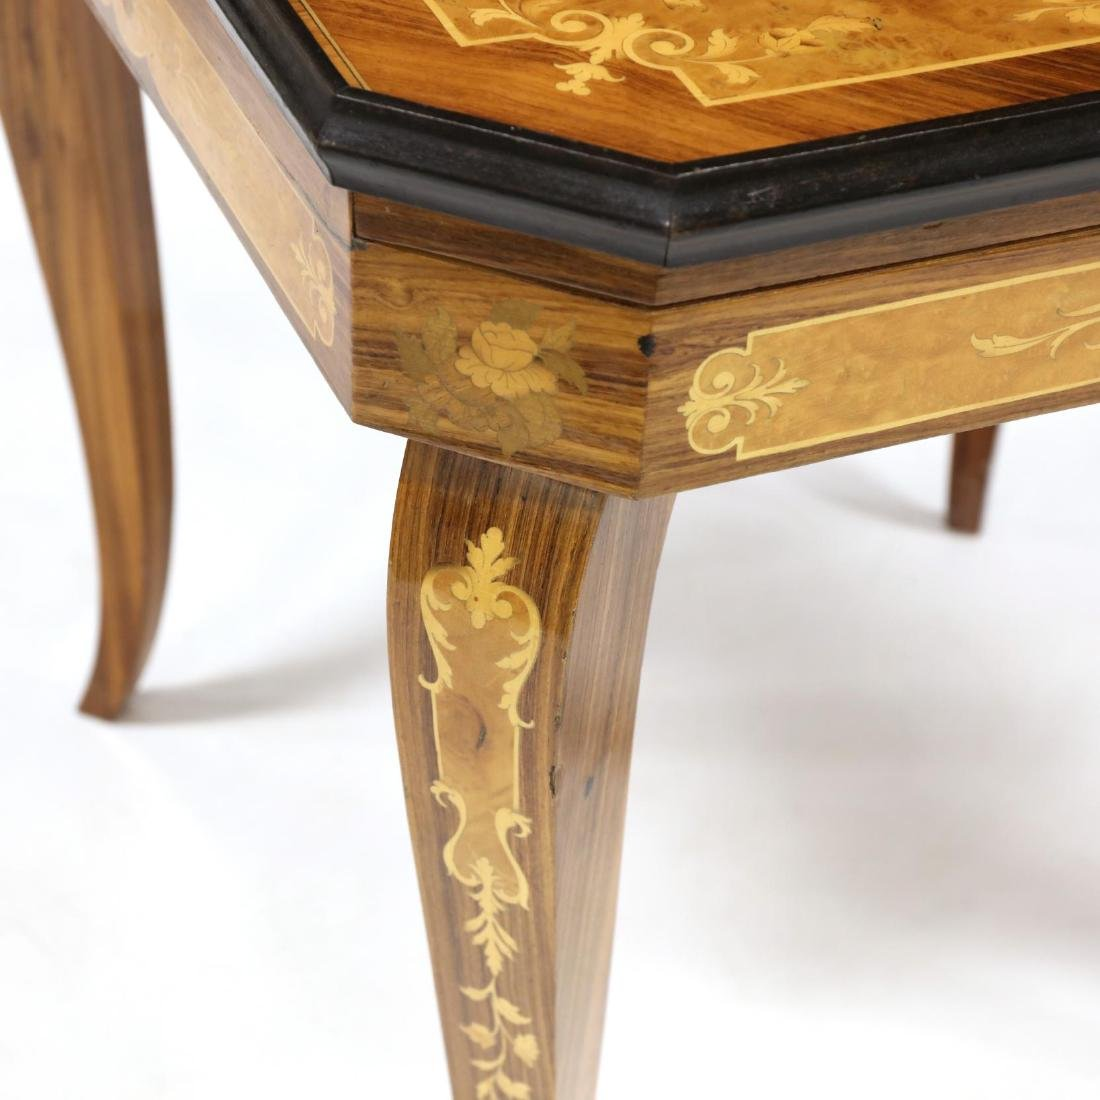 Italian Marquetry Inlaid Multi-Games Table - 3